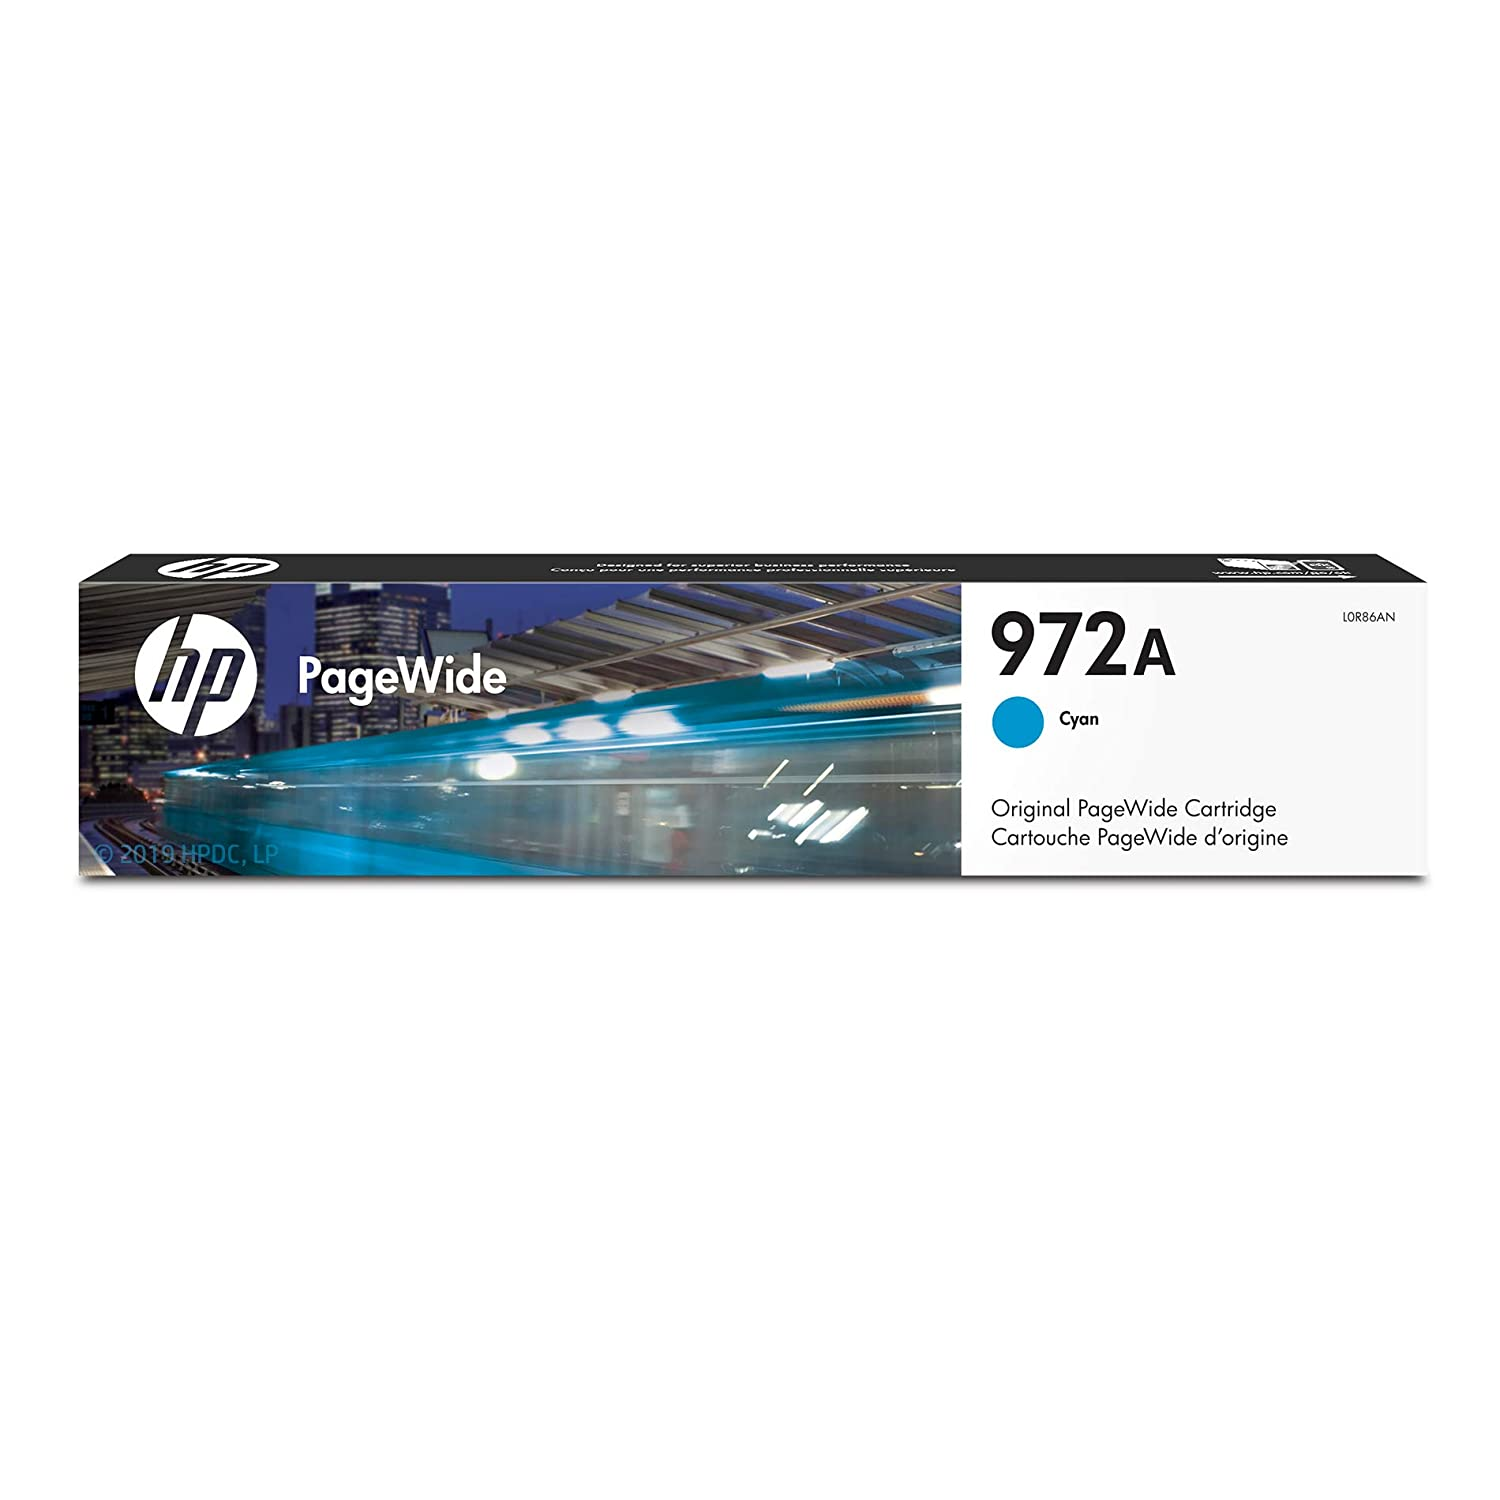 HP 972A | PageWide Cartridge | Cyan | L0R86AN